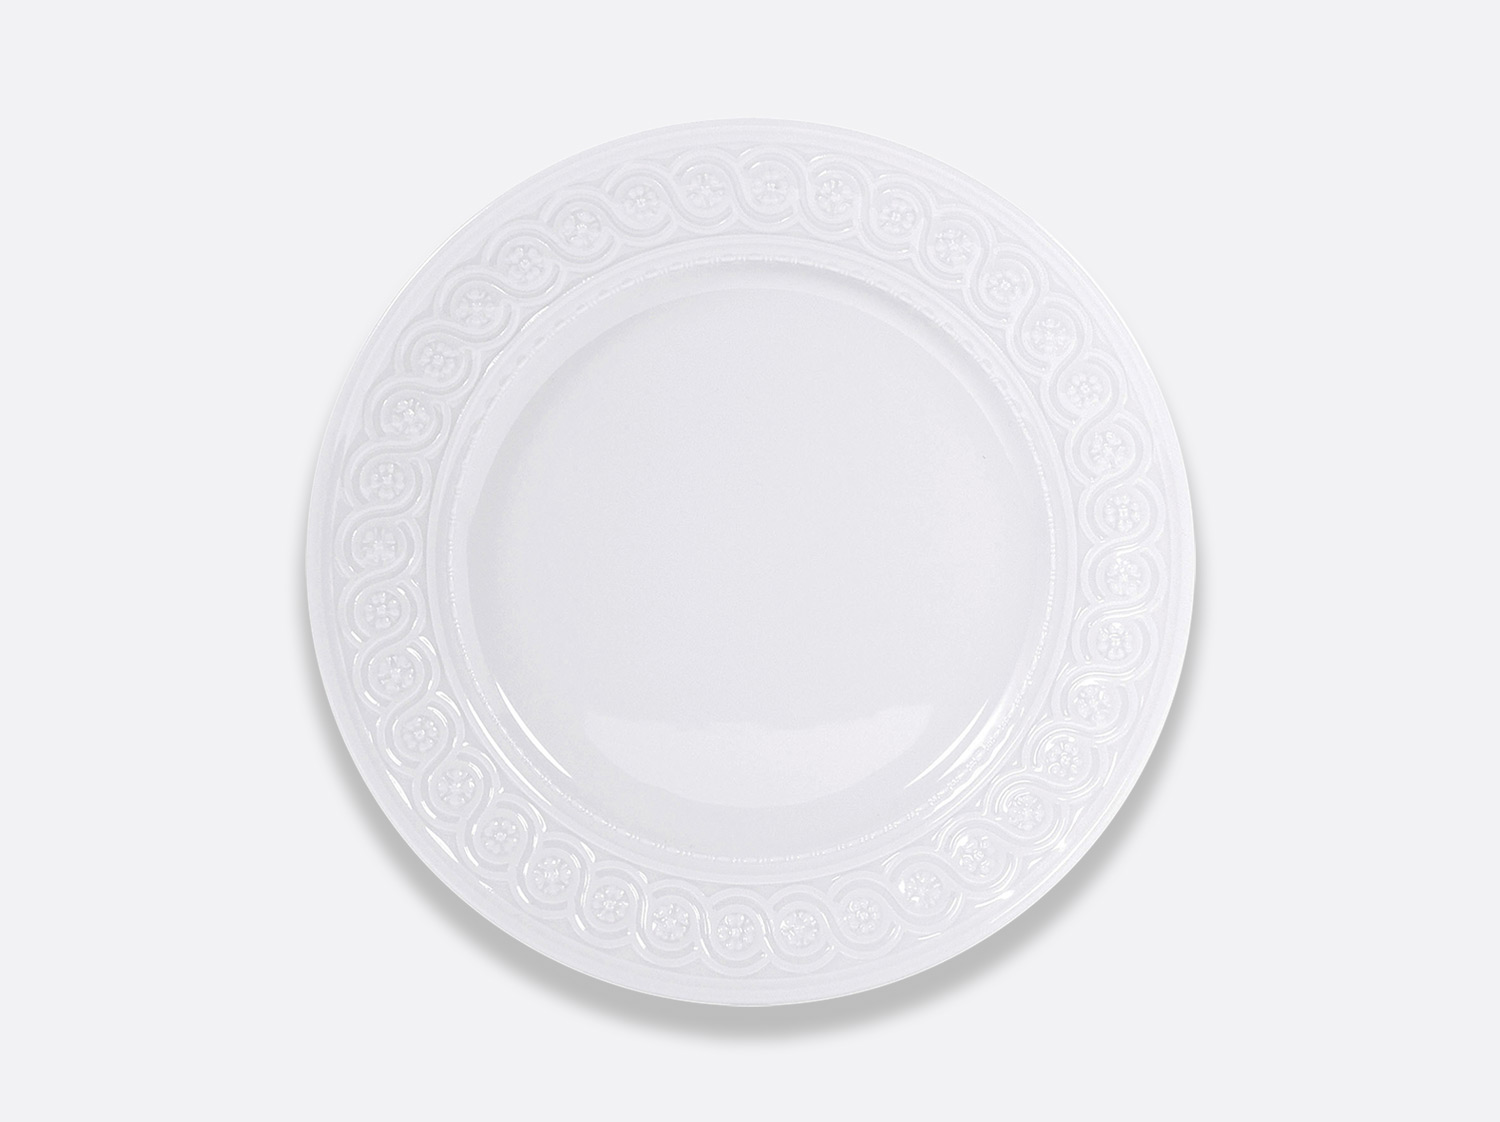 Assiette à dîner 26 cm en porcelaine de la collection Louvre Bernardaud